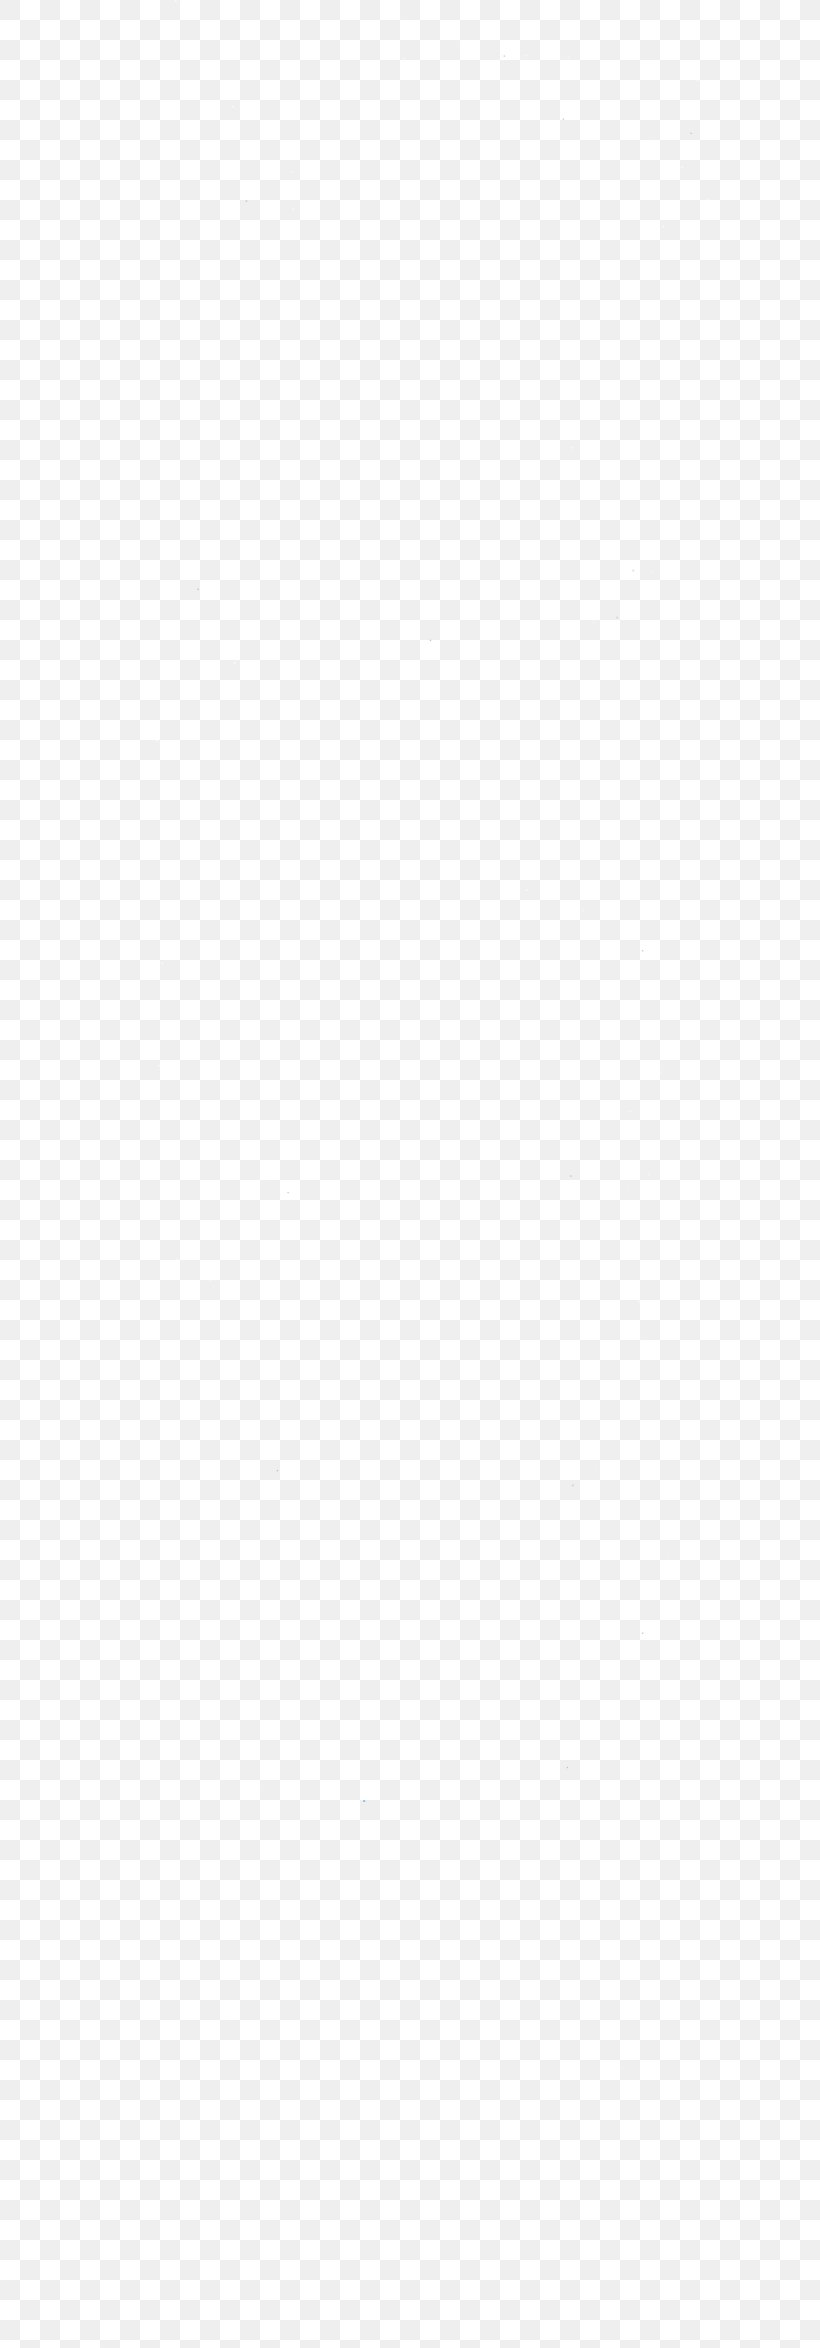 White Black Angle Pattern, PNG, 650x2348px, White, Area, Black, Black And White, Material Download Free